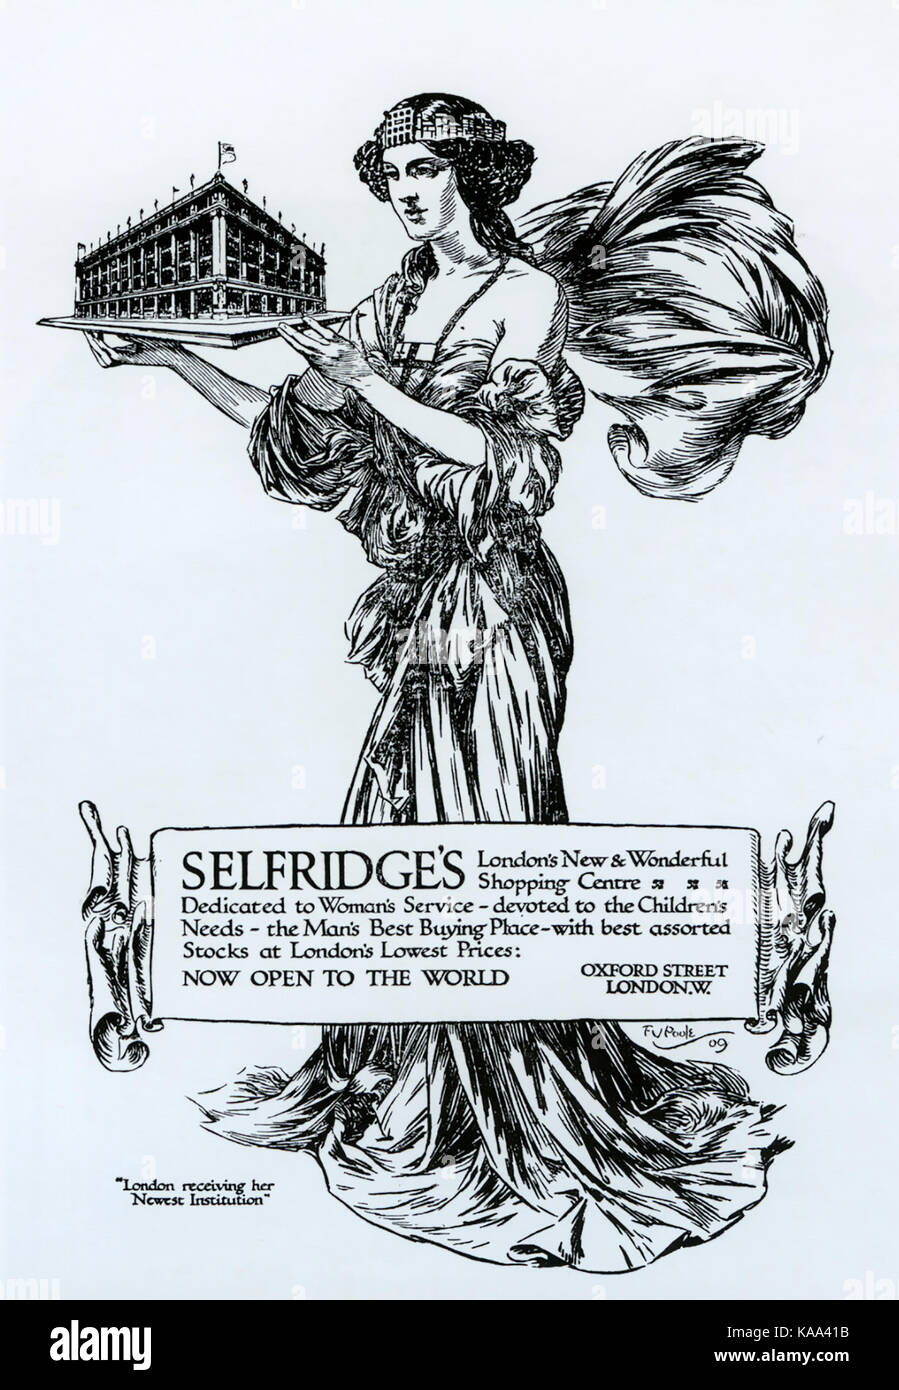 SELFRIDGES A 1909 advert to promote the opening of the store on Oxford Street, London. - Stock Image